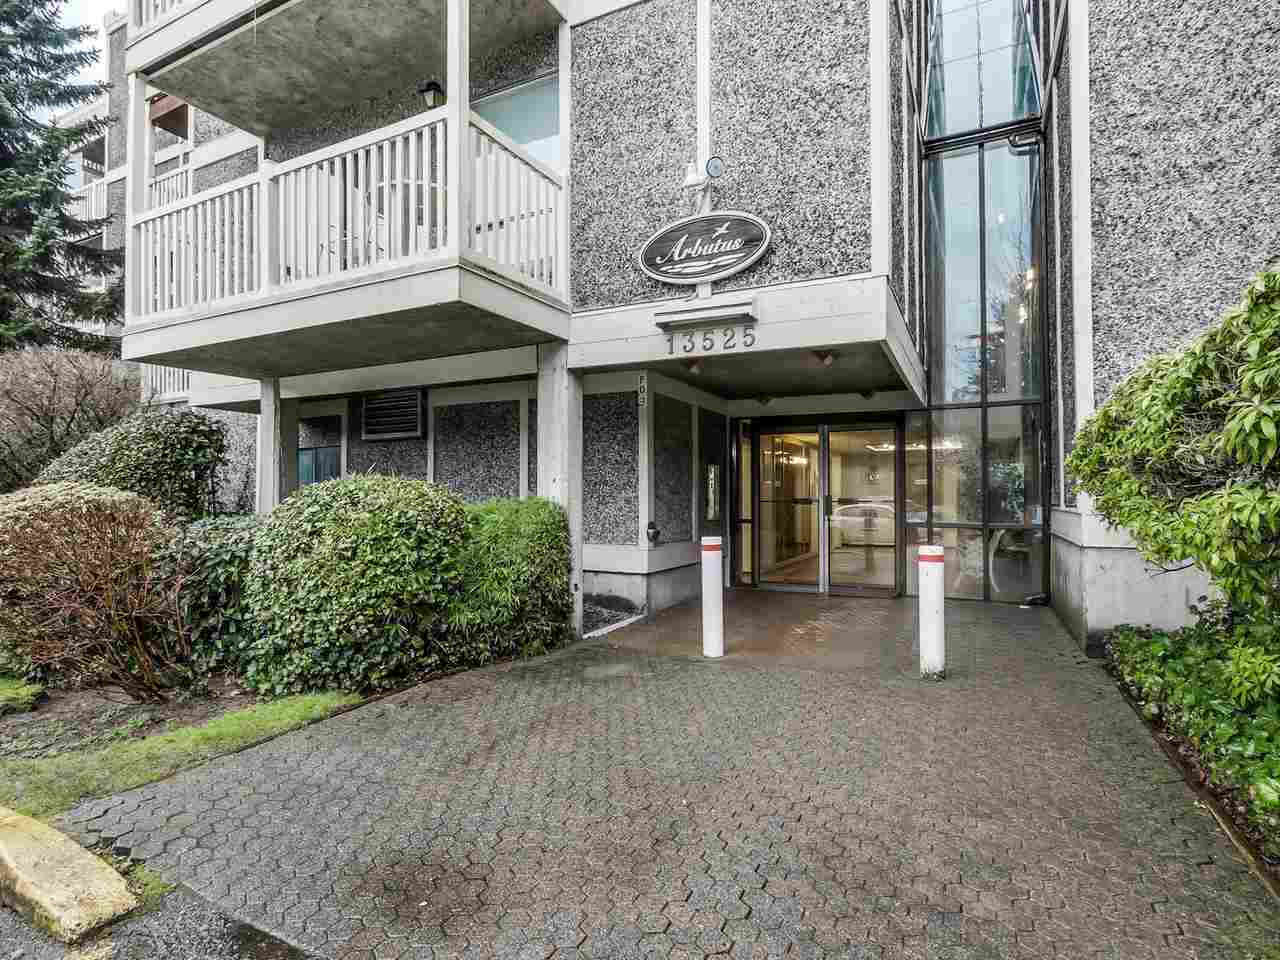 Main Photo: 104 13525 96 Avenue in Surrey: Whalley Condo for sale (North Surrey)  : MLS® # R2023076